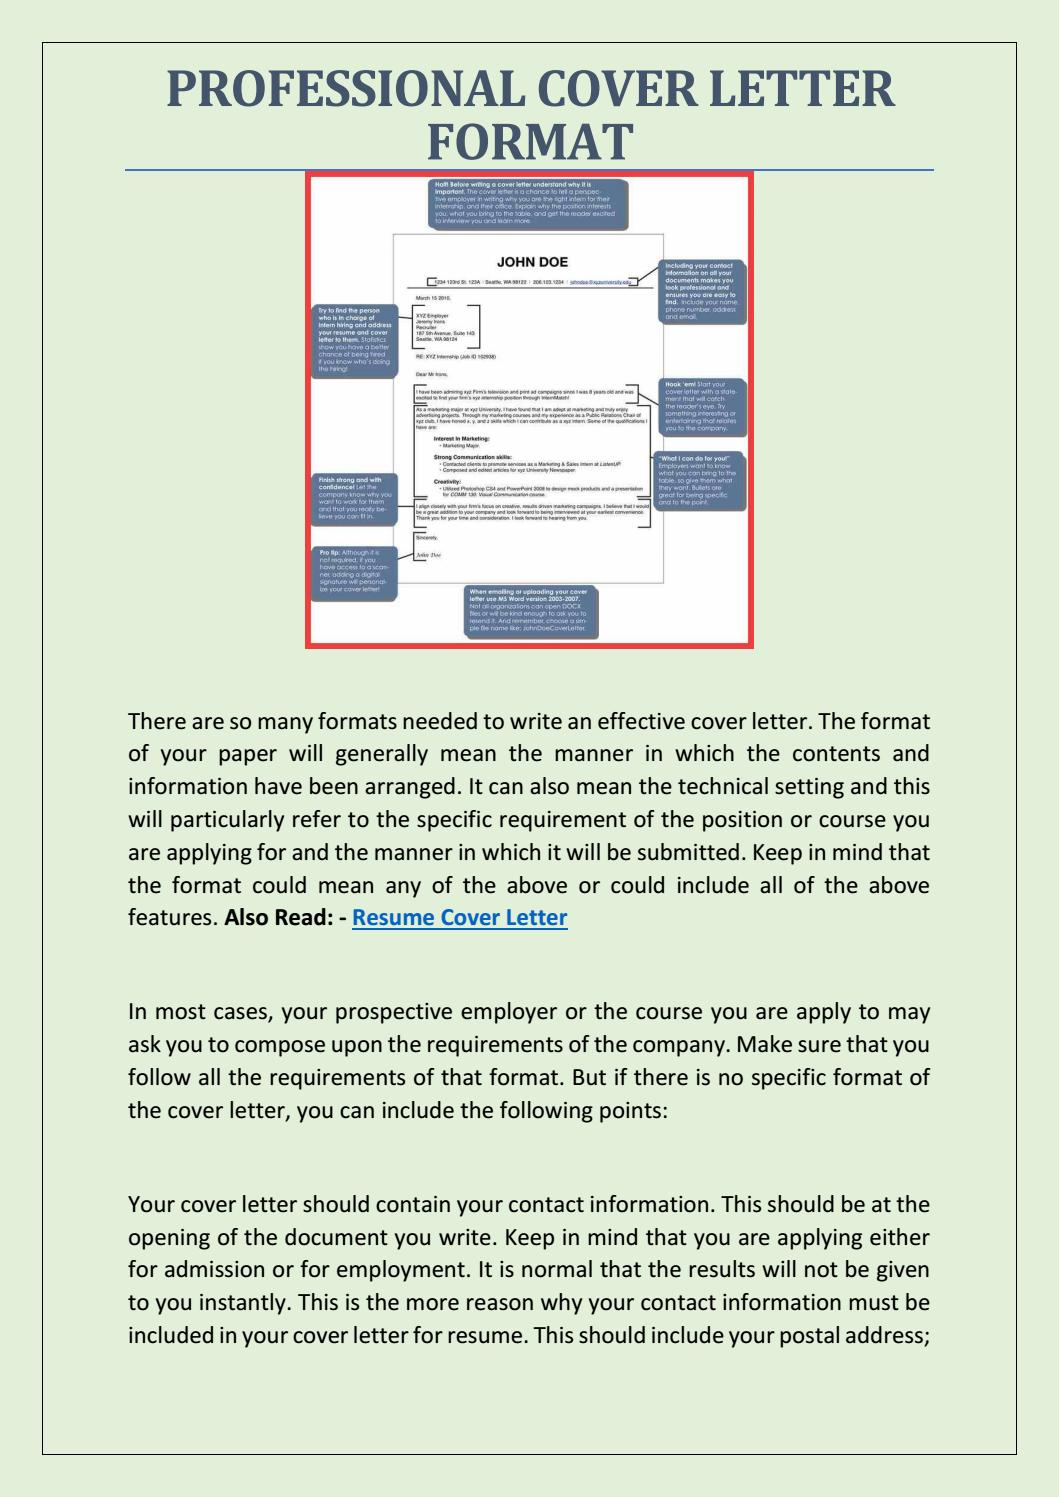 Professional Cover Letter Formats from image.isu.pub